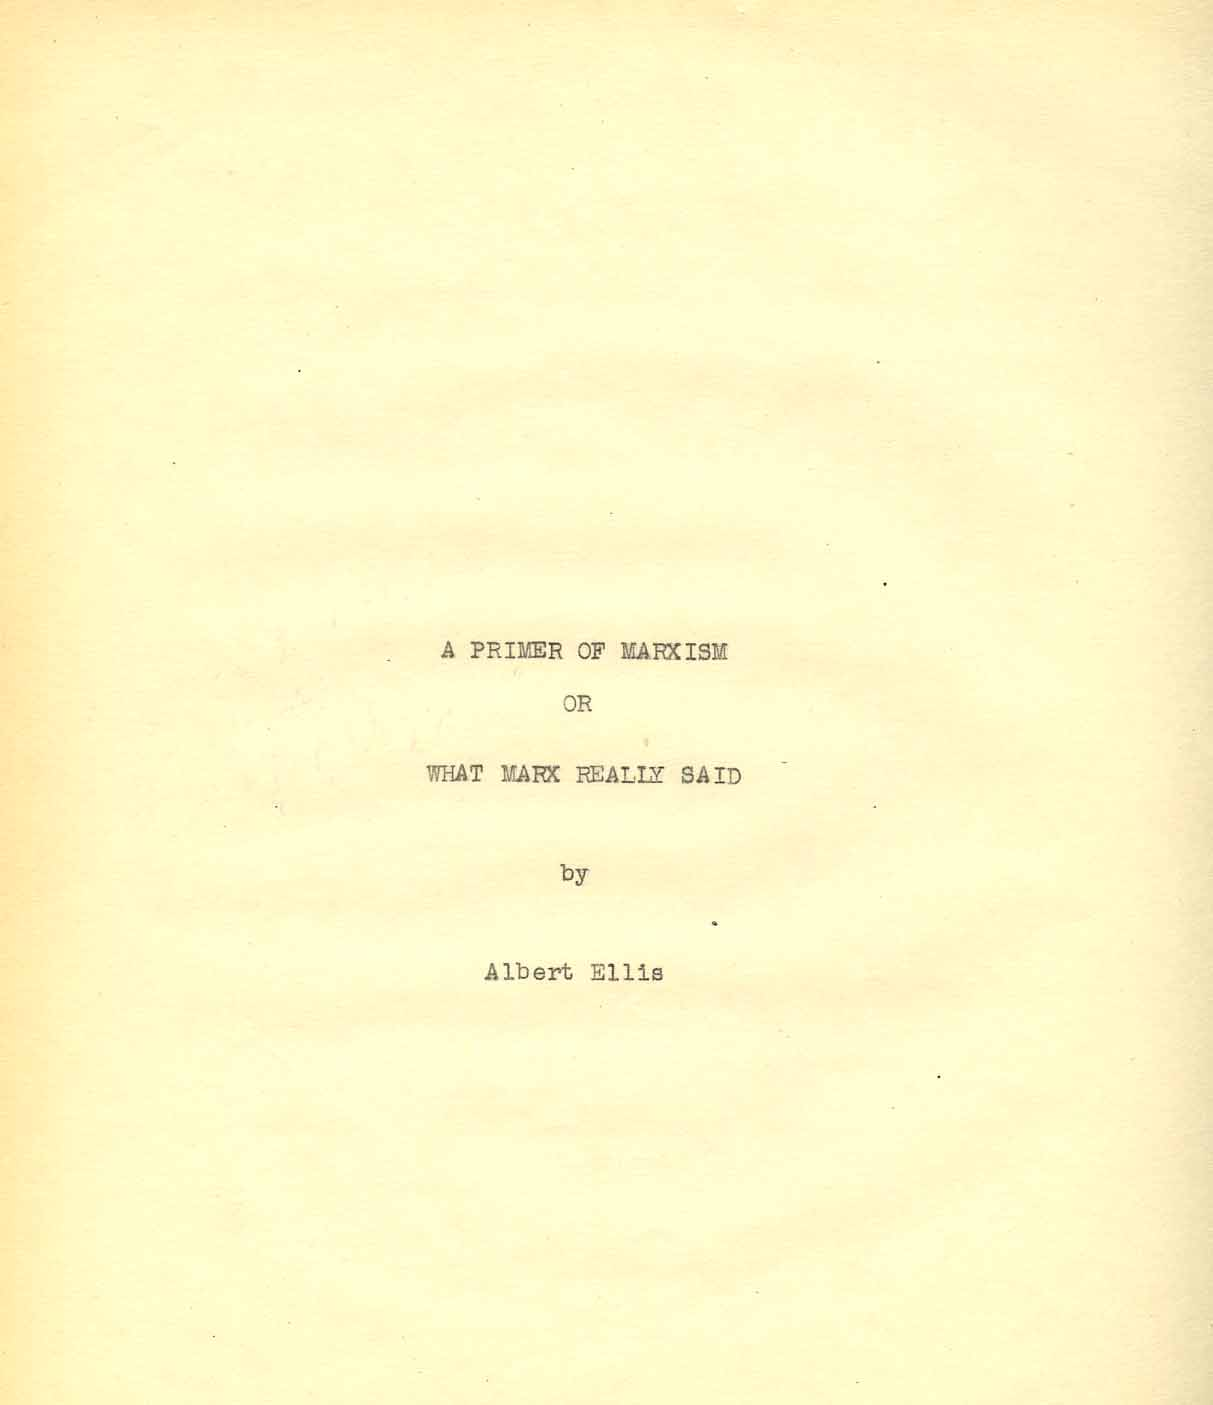 archiving albert ellis psychologist and creator of rational primer of marxism title page